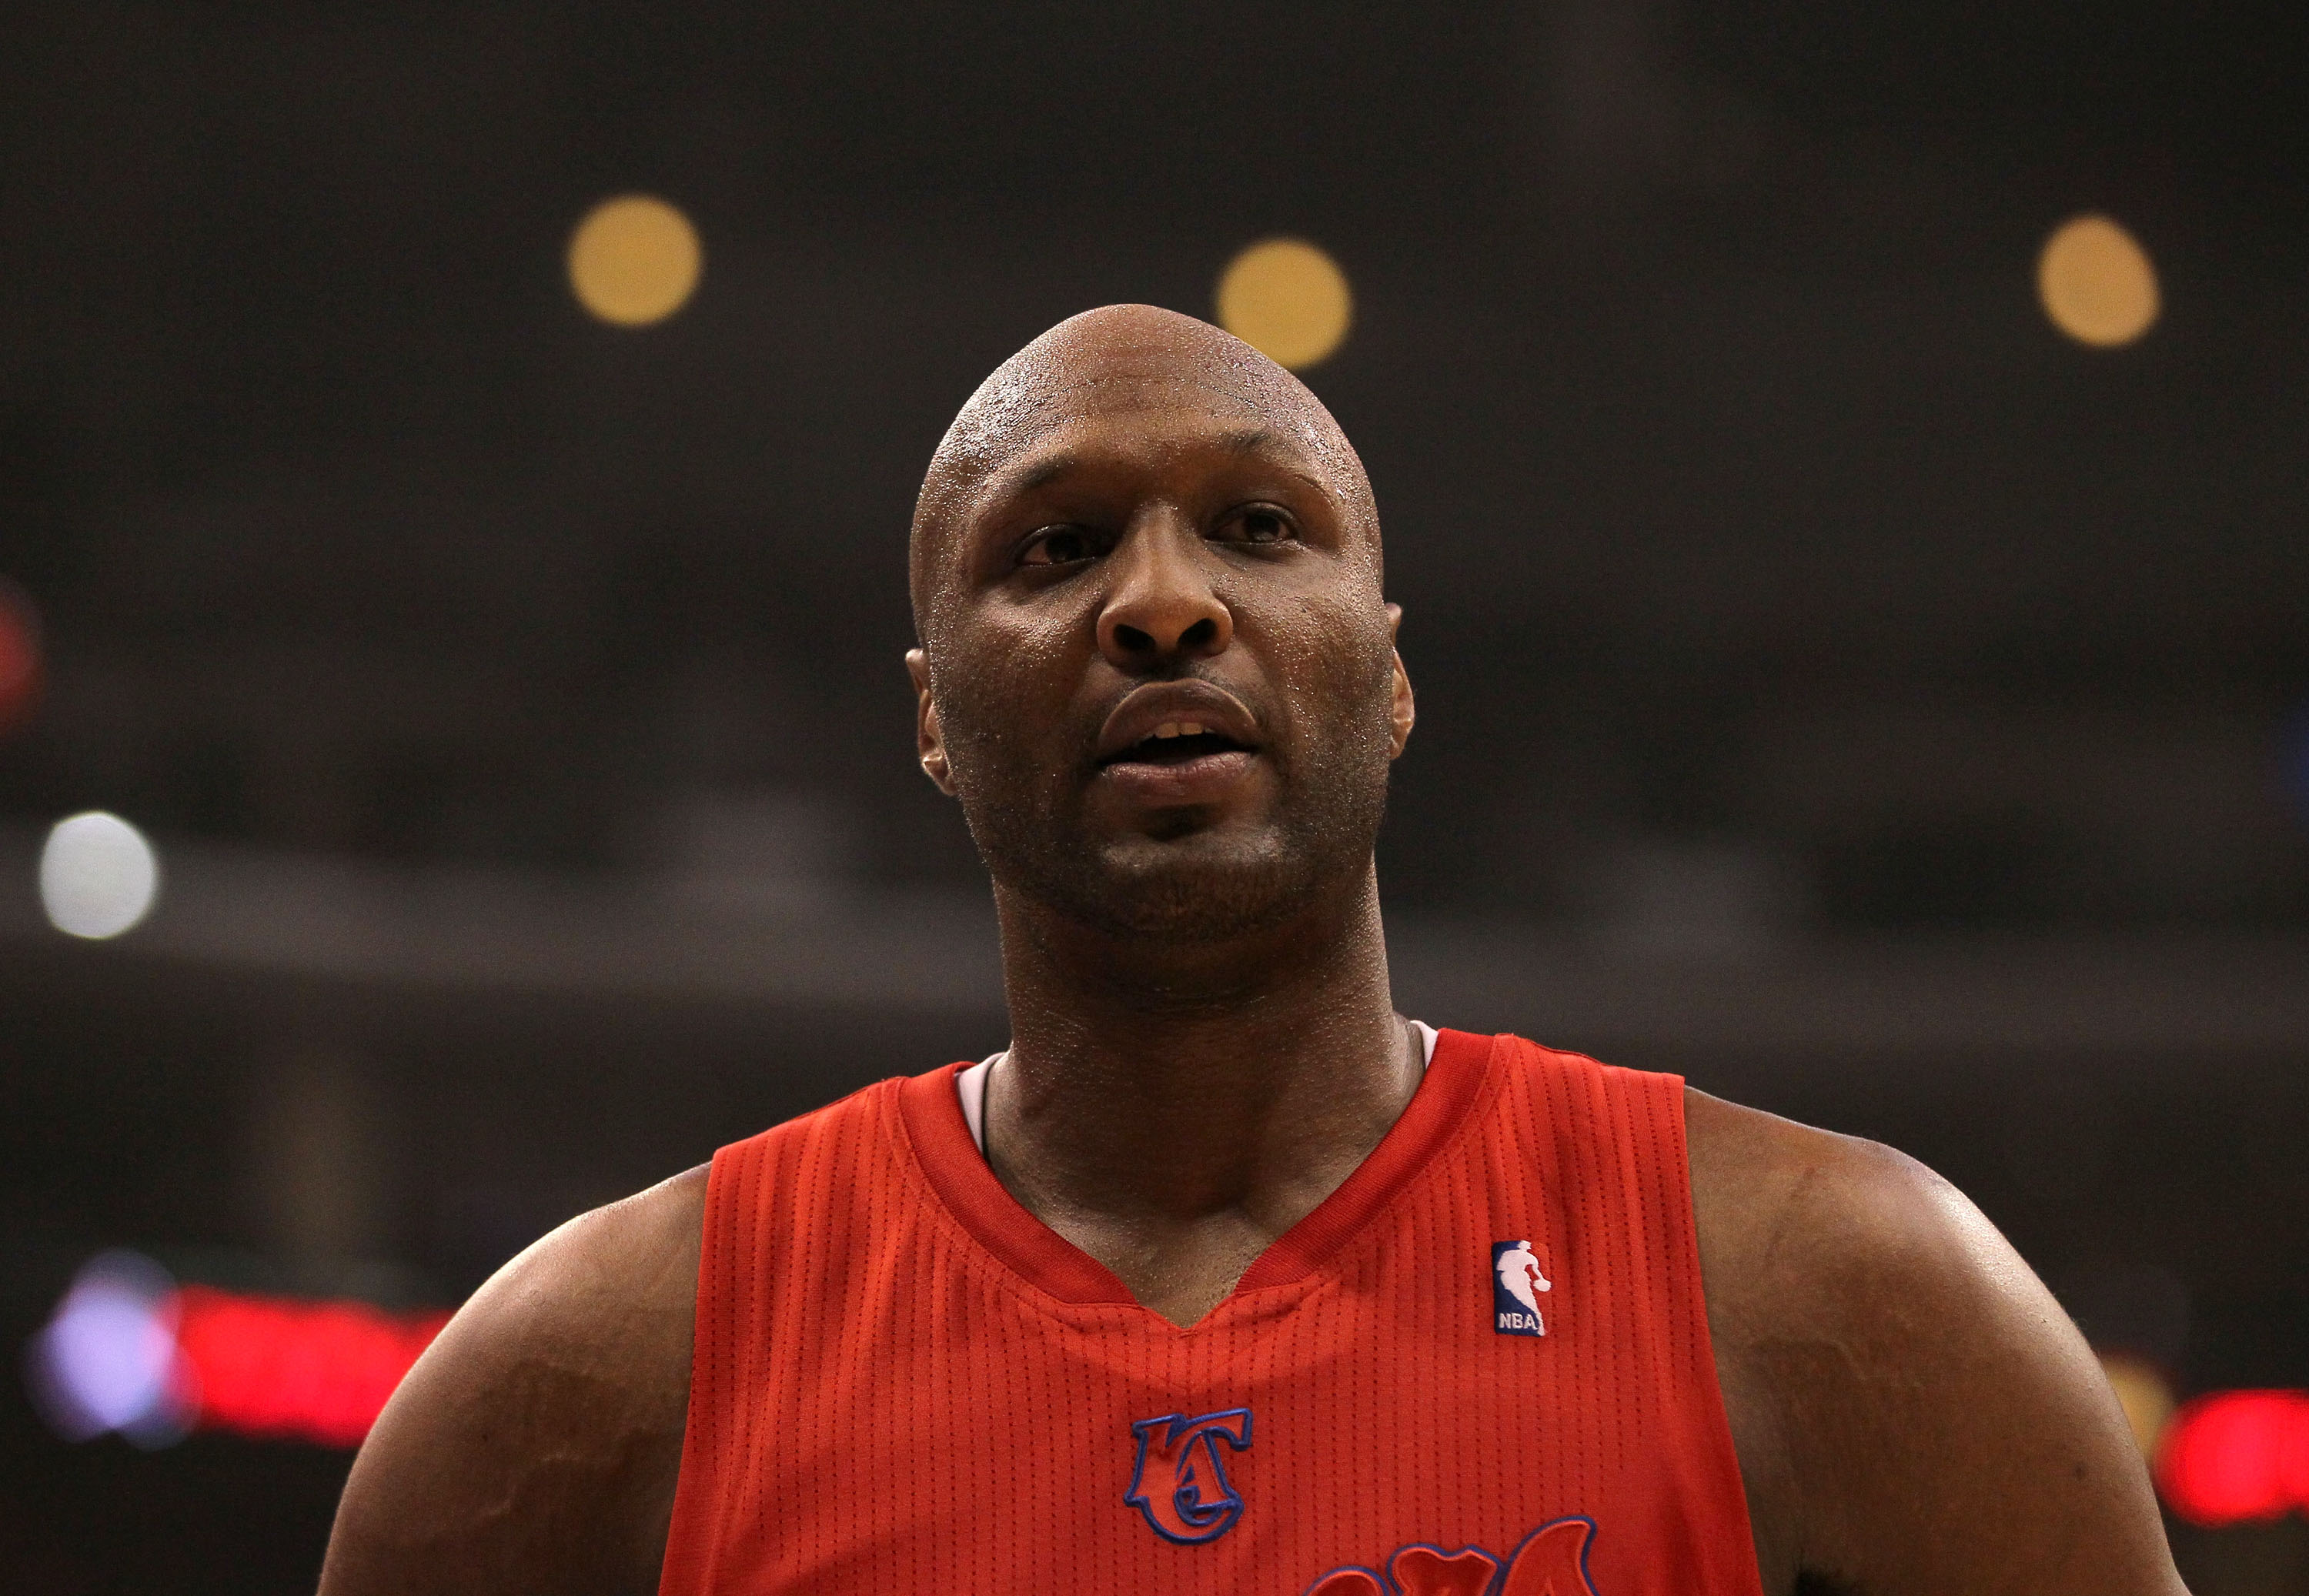 Lamar Odom's biggest payday came in Miami. (Getty)